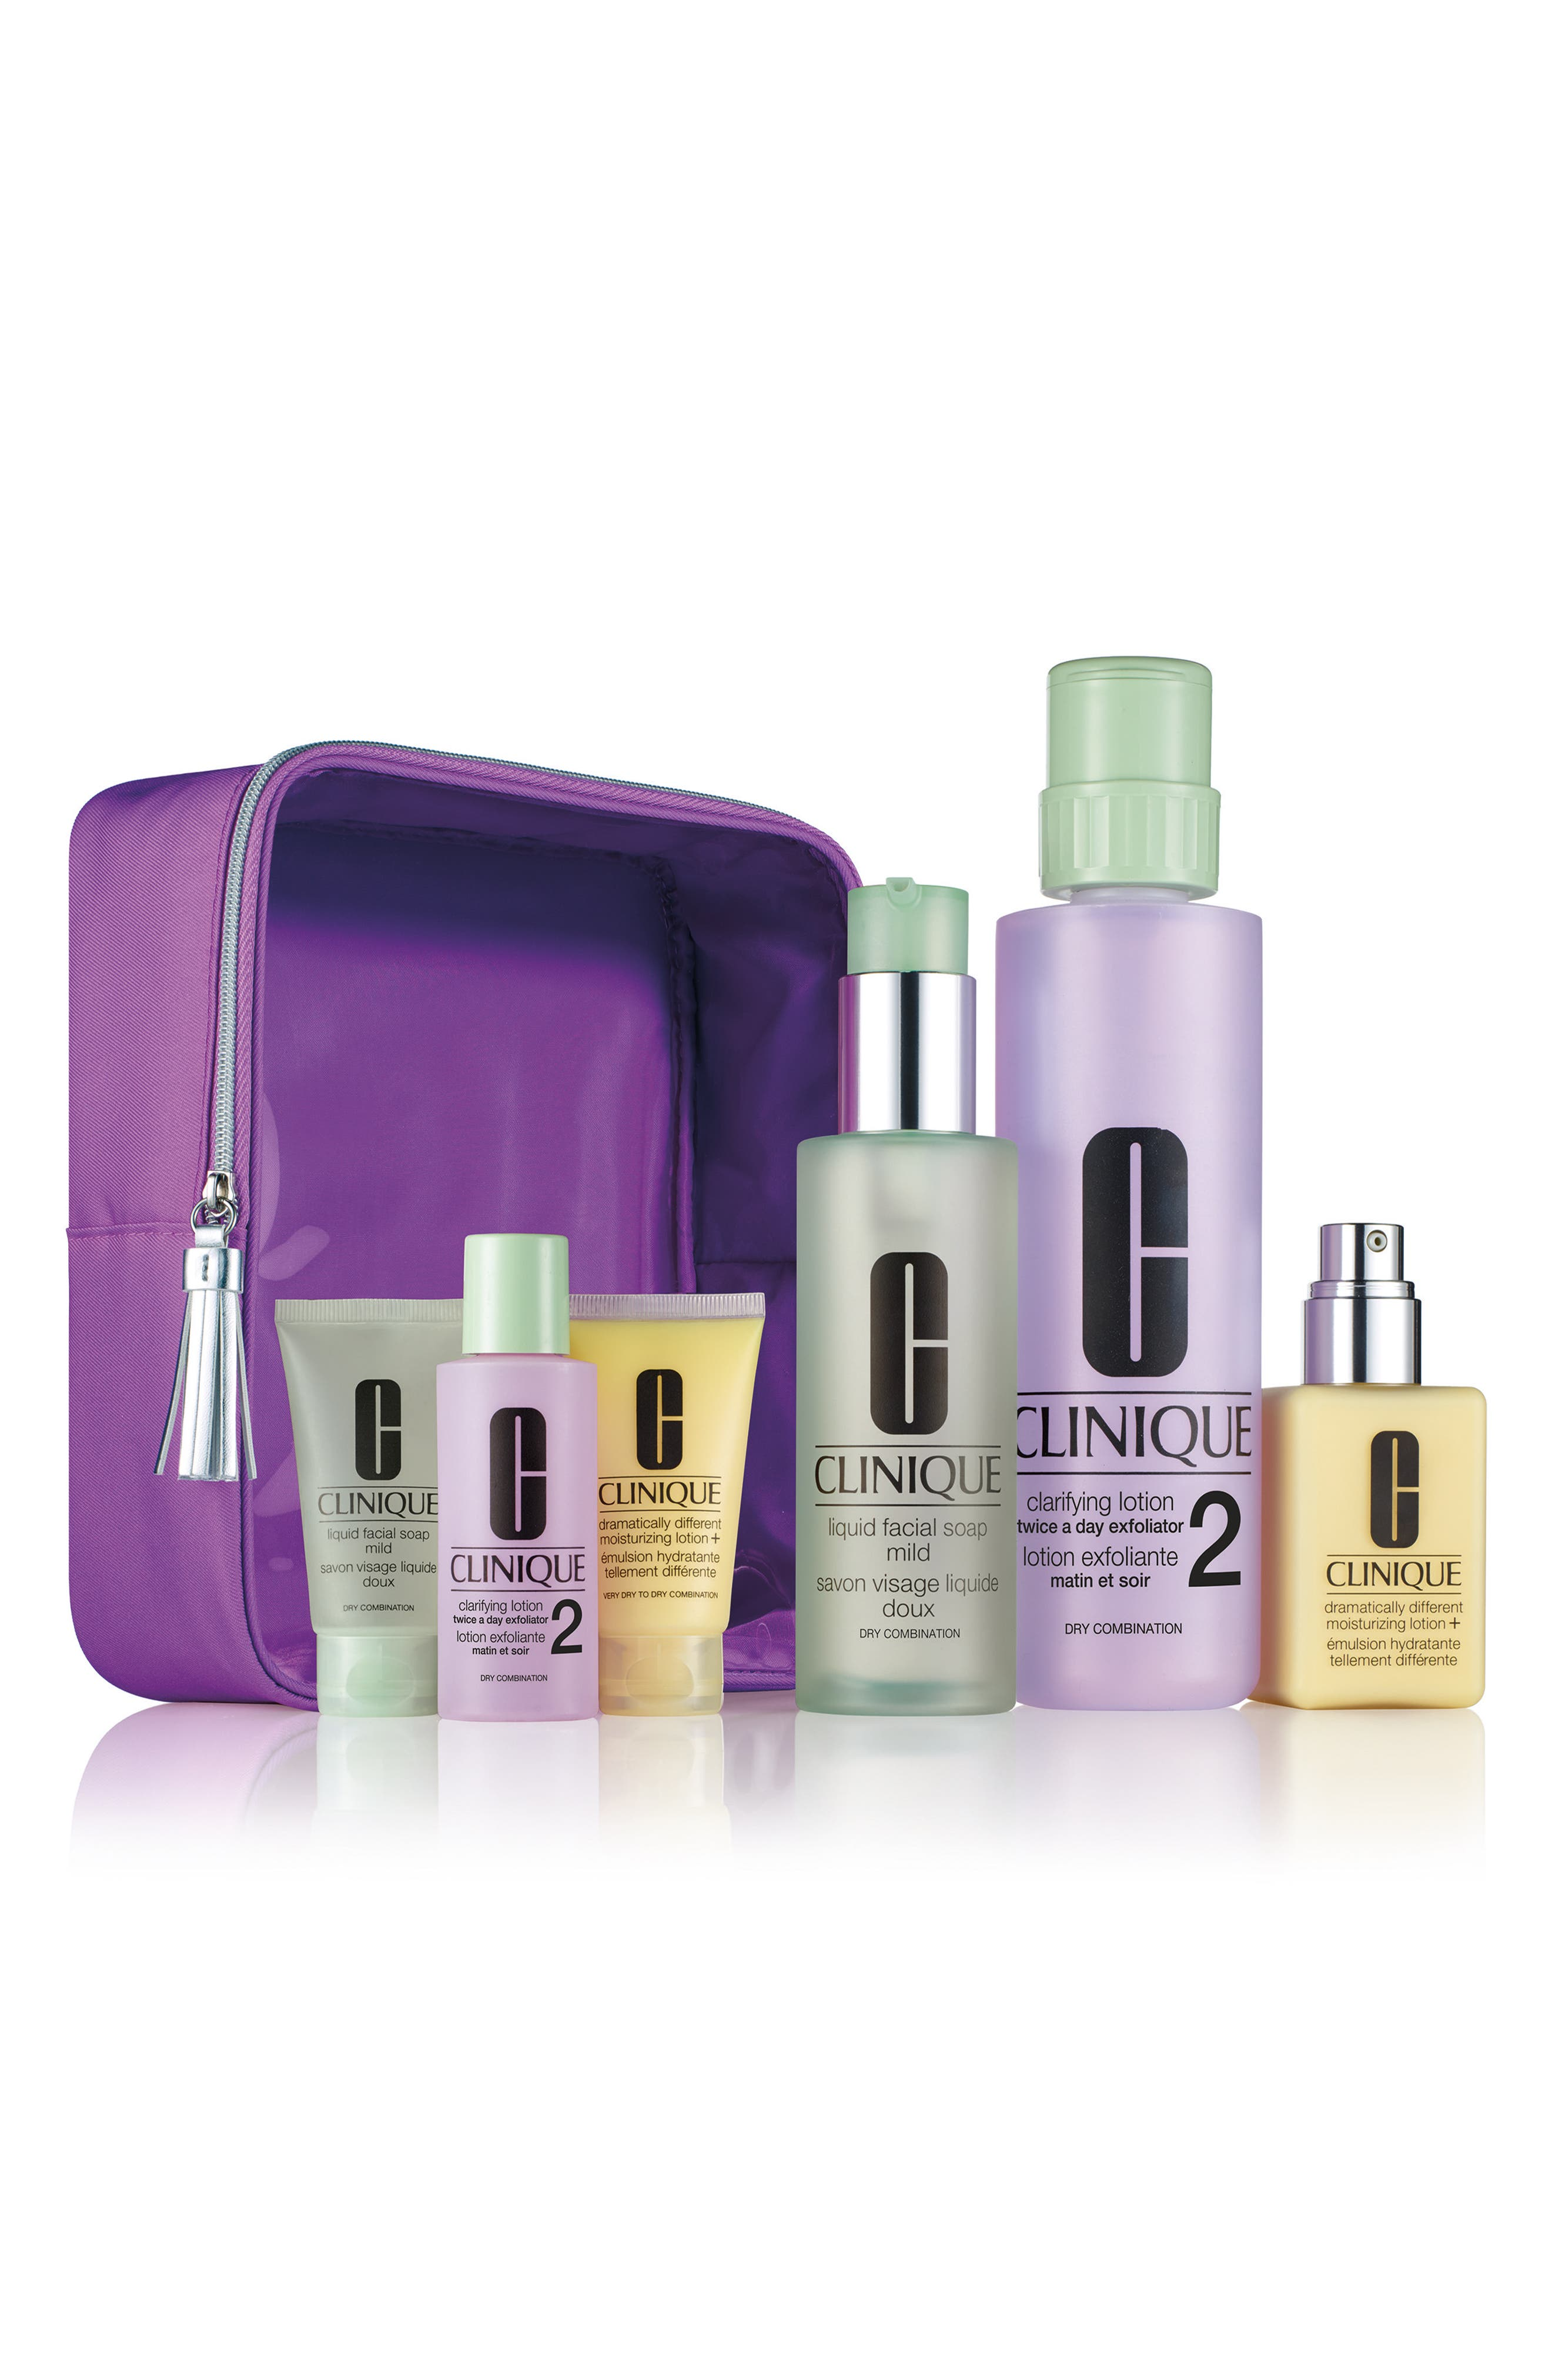 Clinique Great Skin Home & Away Set for Skin Type I & II ($92 Value)